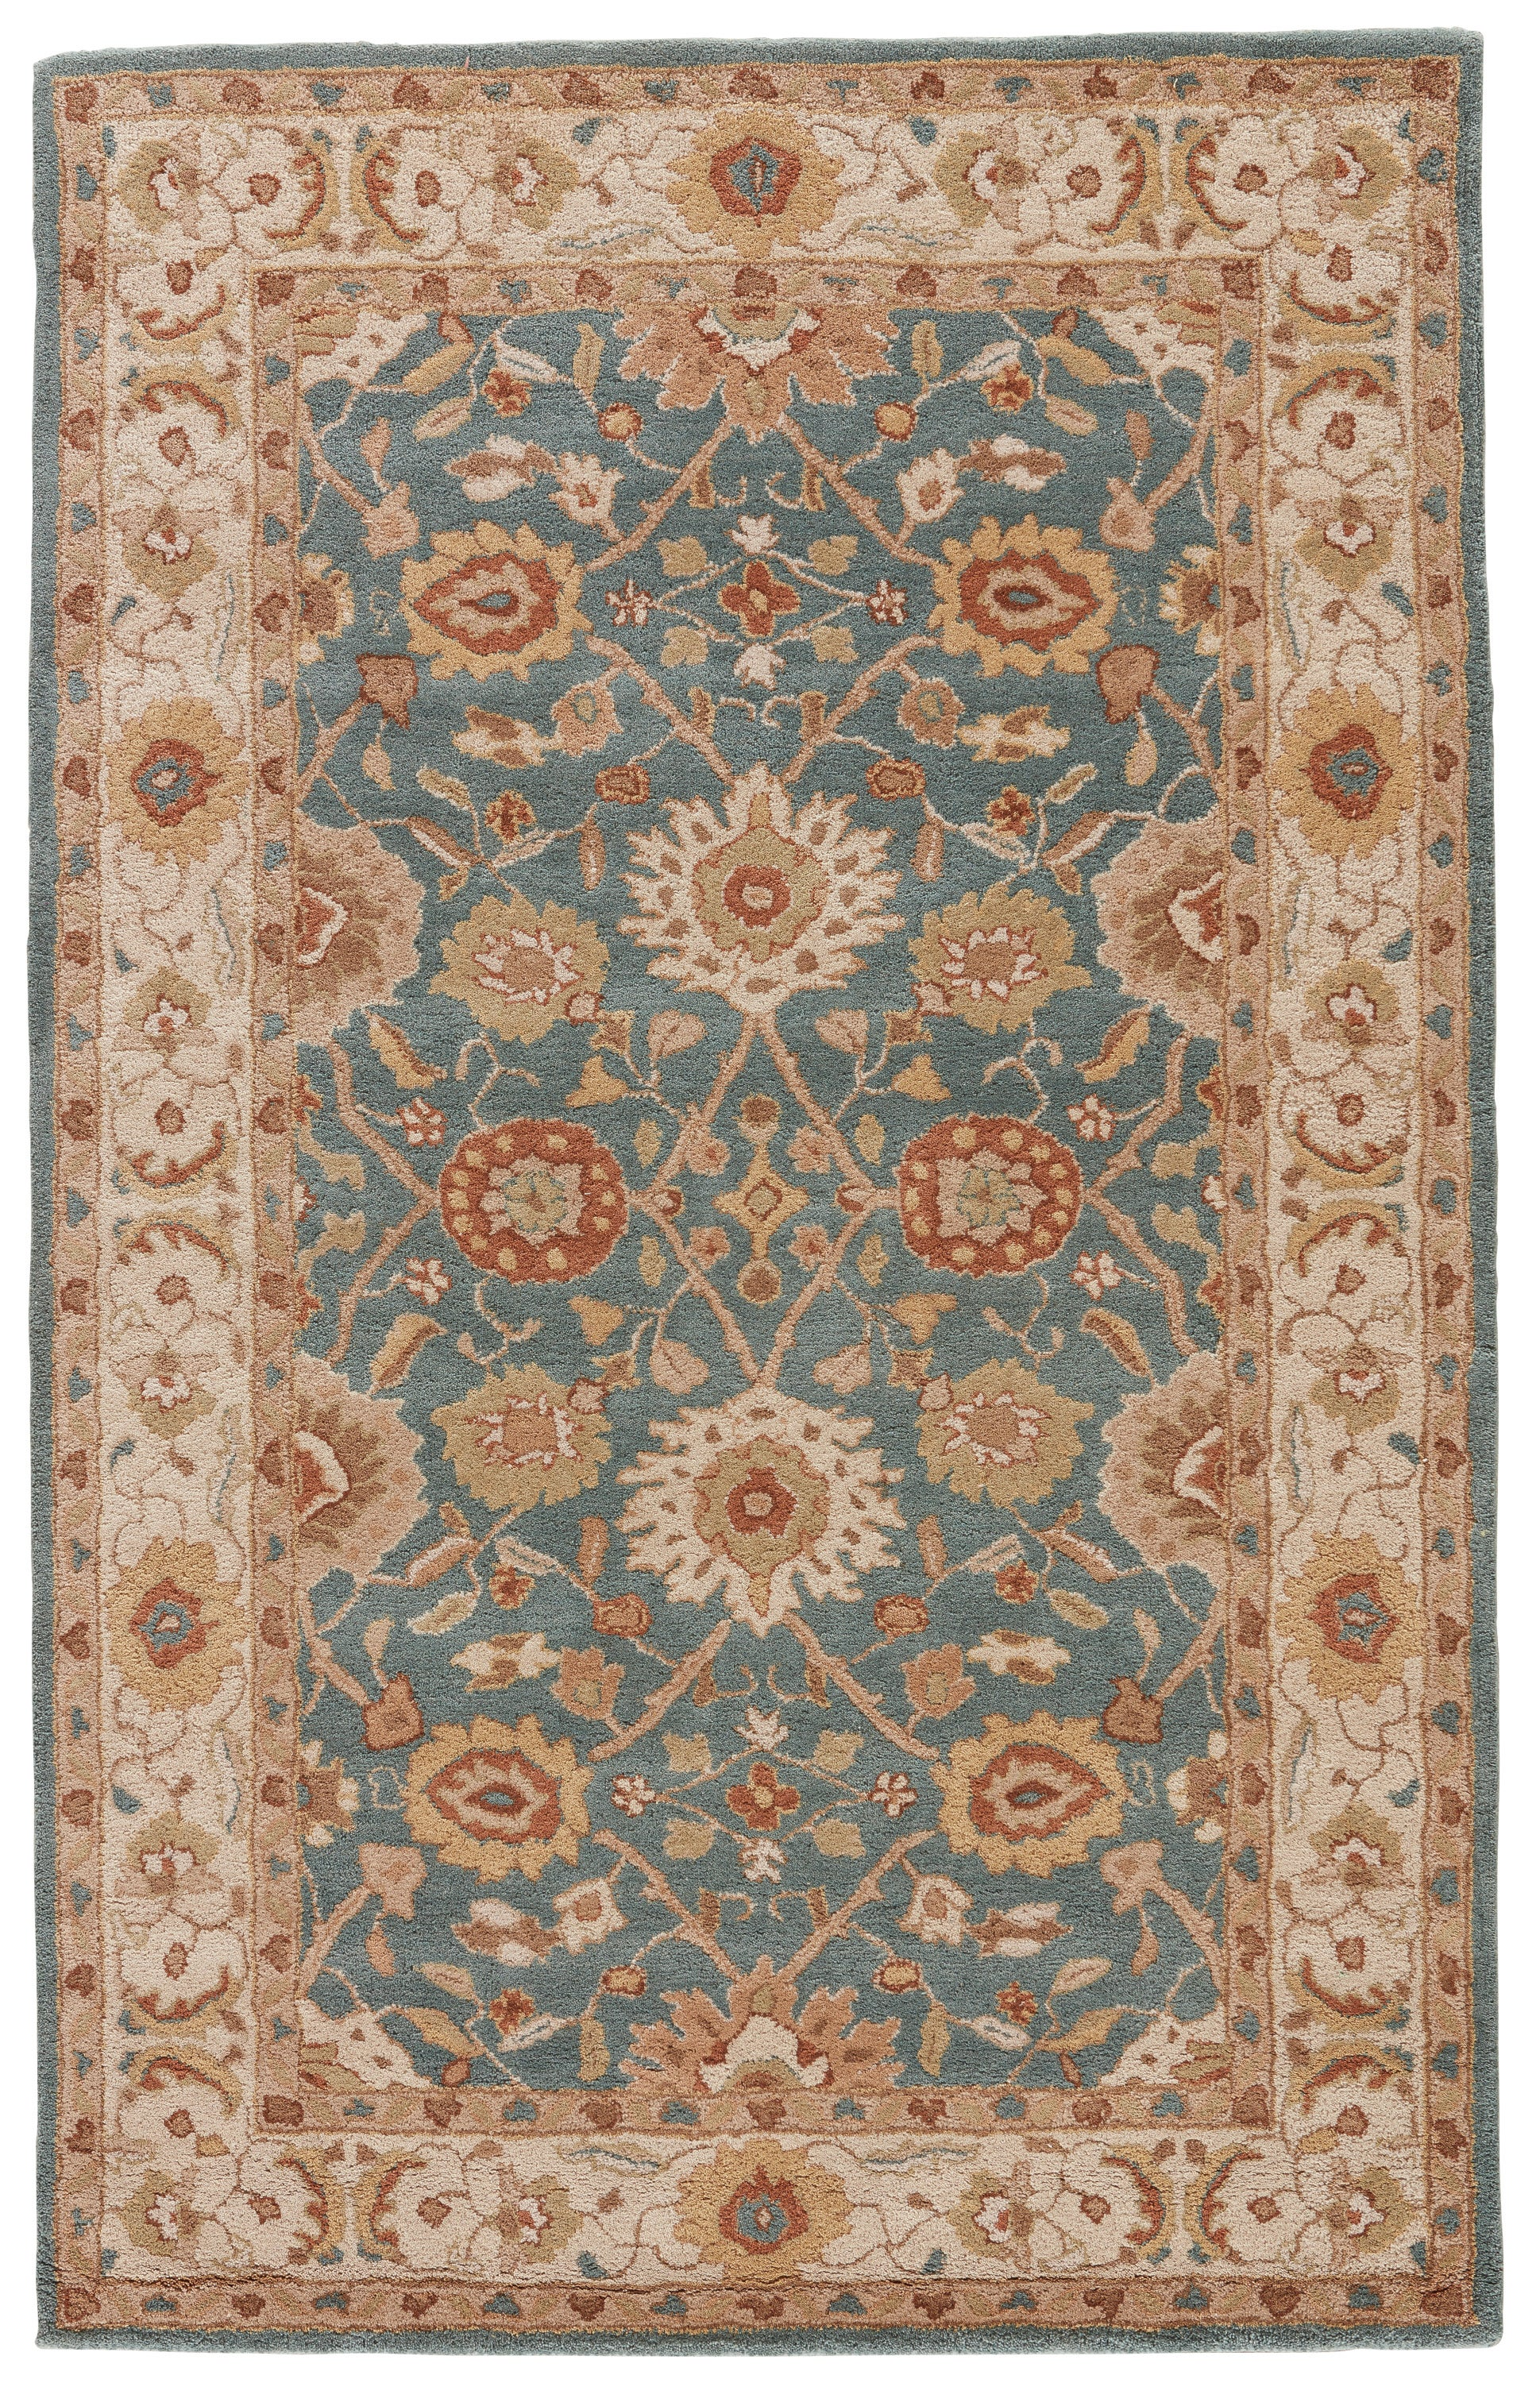 Rectangle Blue Floral Hand Tufted Wool Traditional & Oriental recommended for Bedroom, Bathroom, Office, Hallway, Living Room